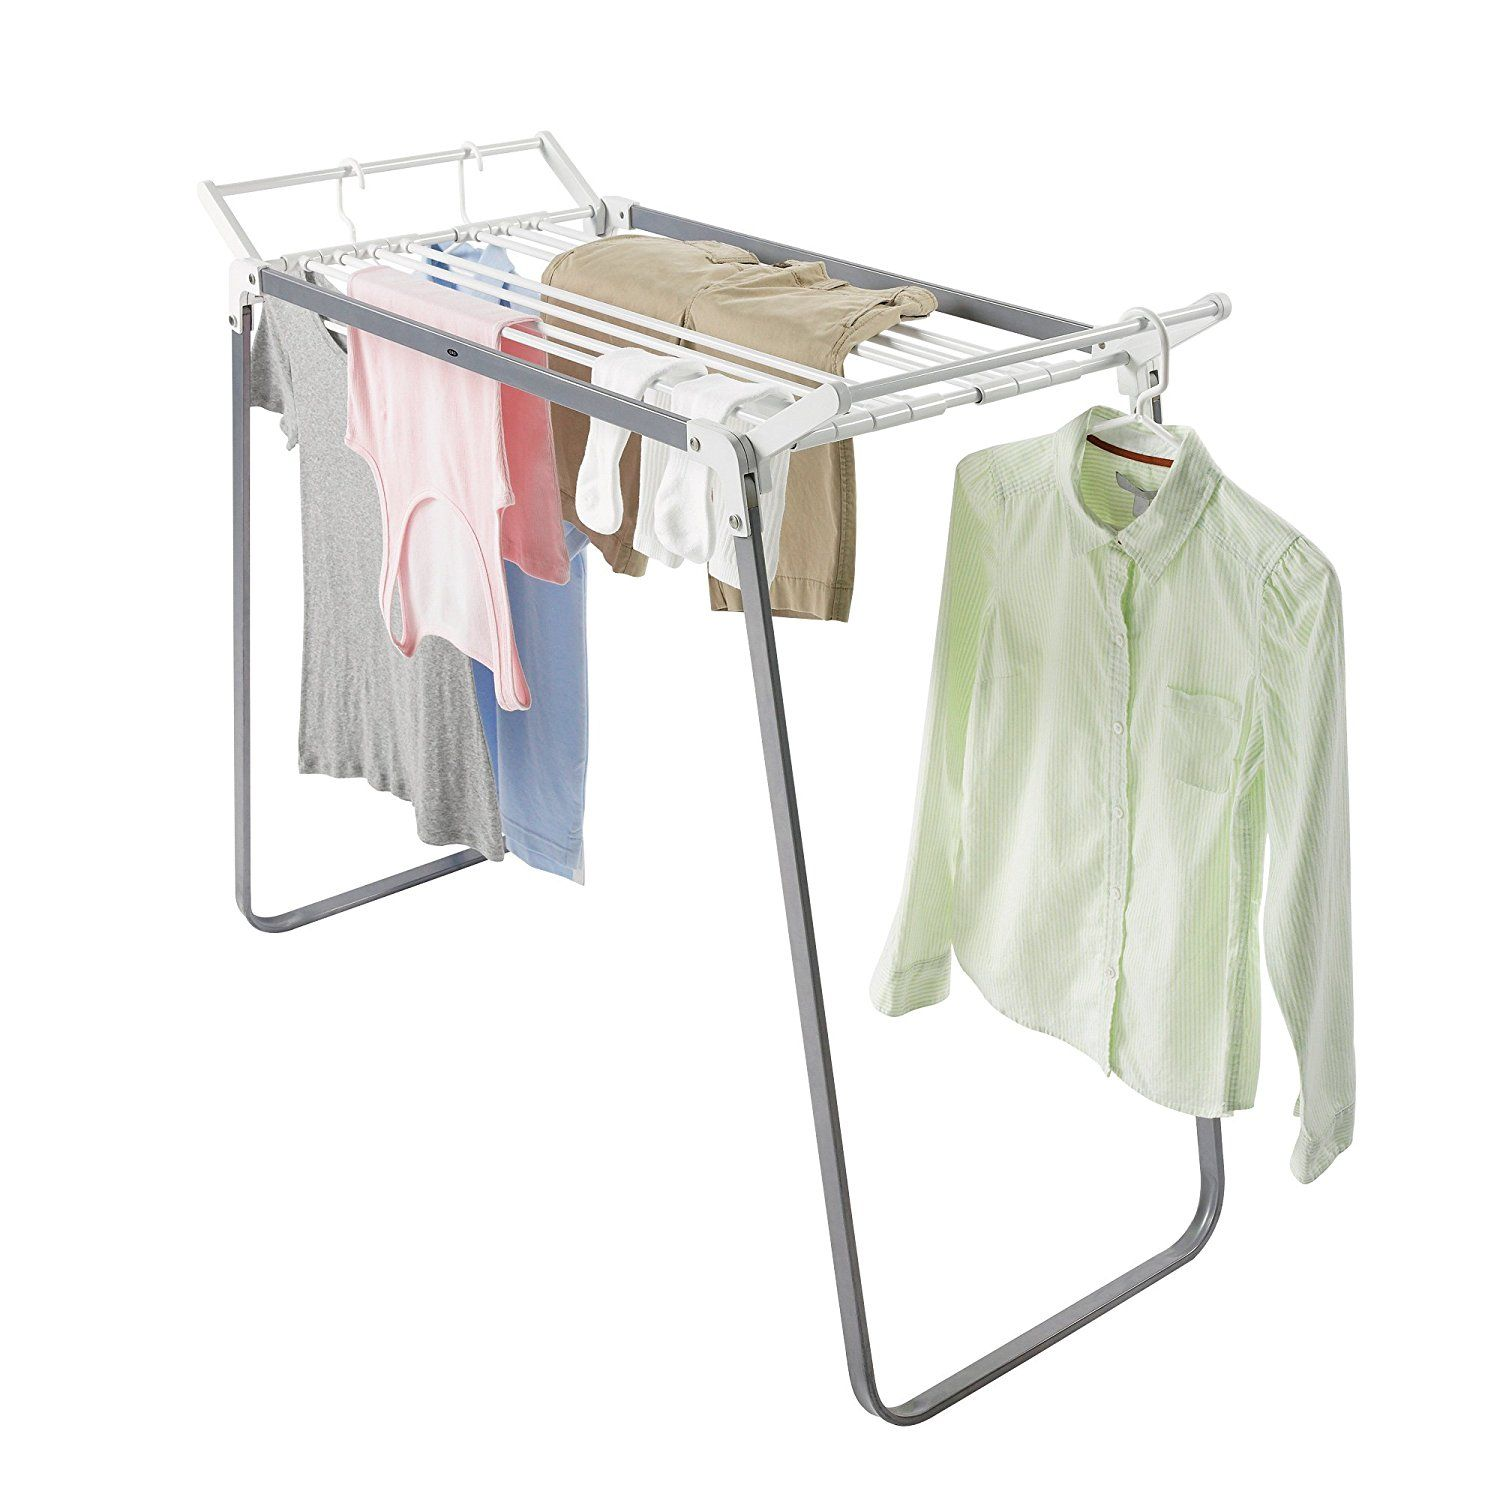 hanger solid isano double premium steel drying rack cloth layer stainless productdetail clothes wheels b